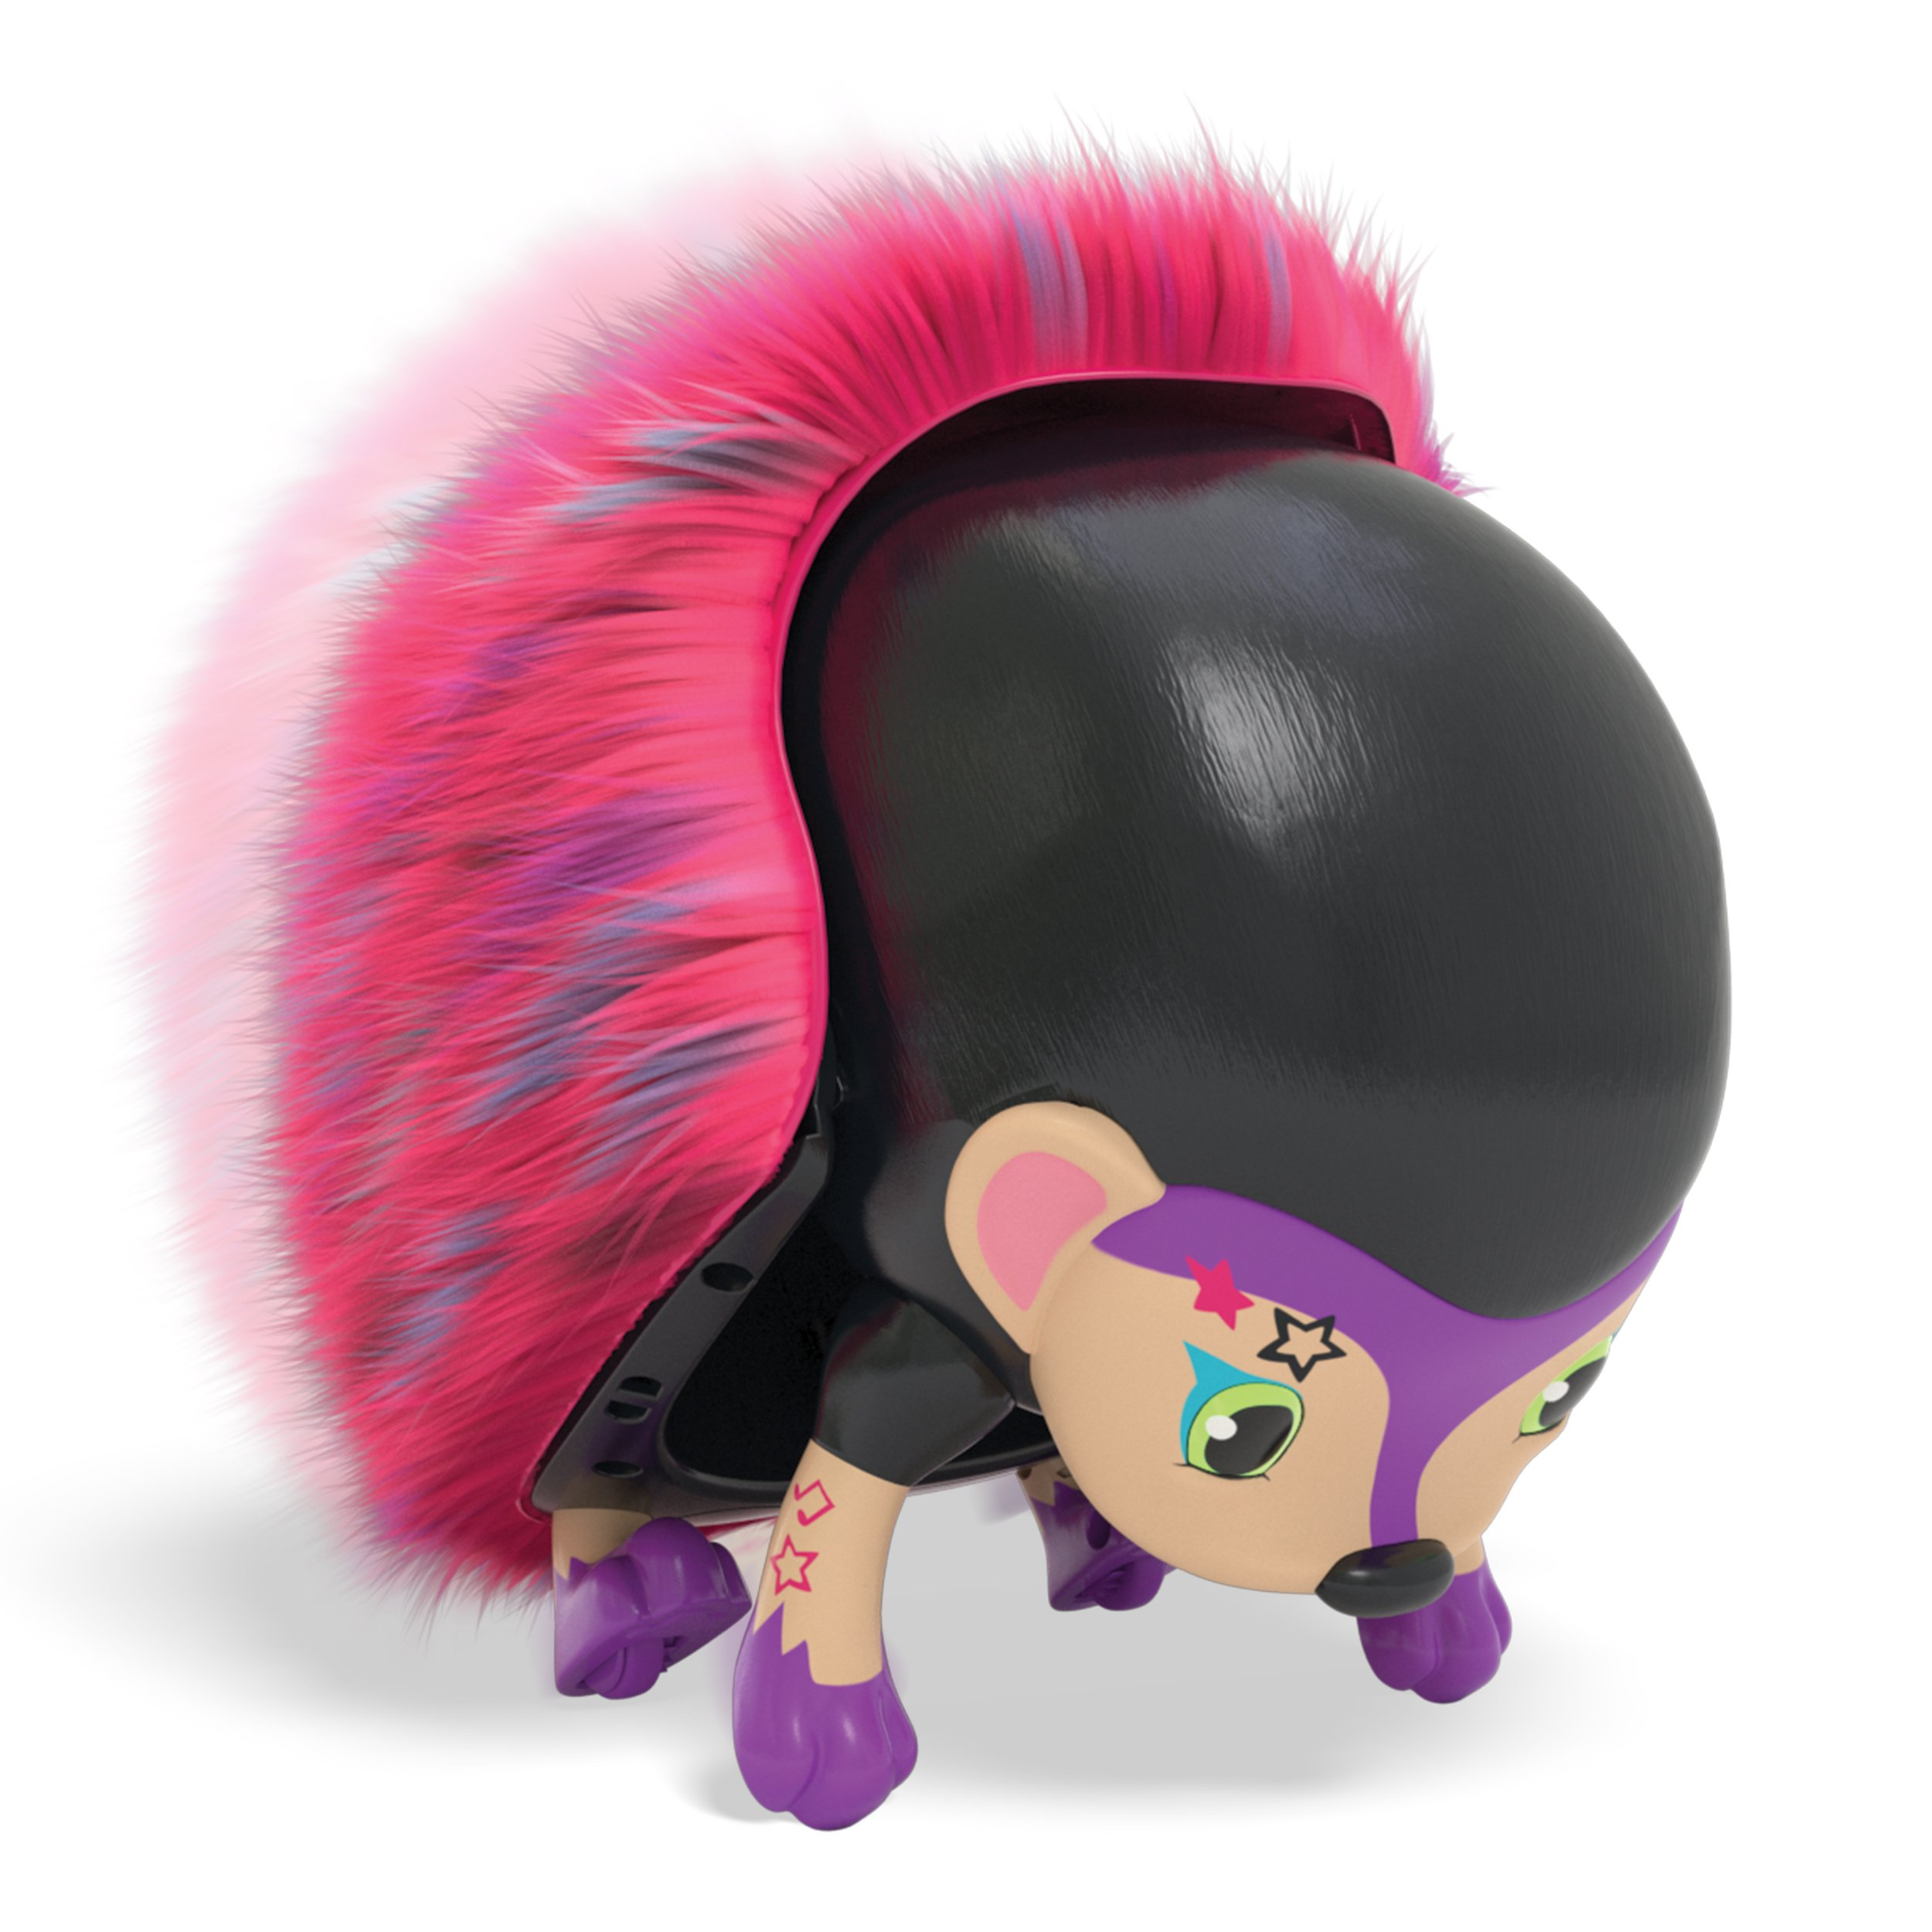 Zoomer Hedgiez,Tumbles, Interactive Hedgehog with Lights, Sounds and Sensors, by Spin Master by Zoomer (Image #3)